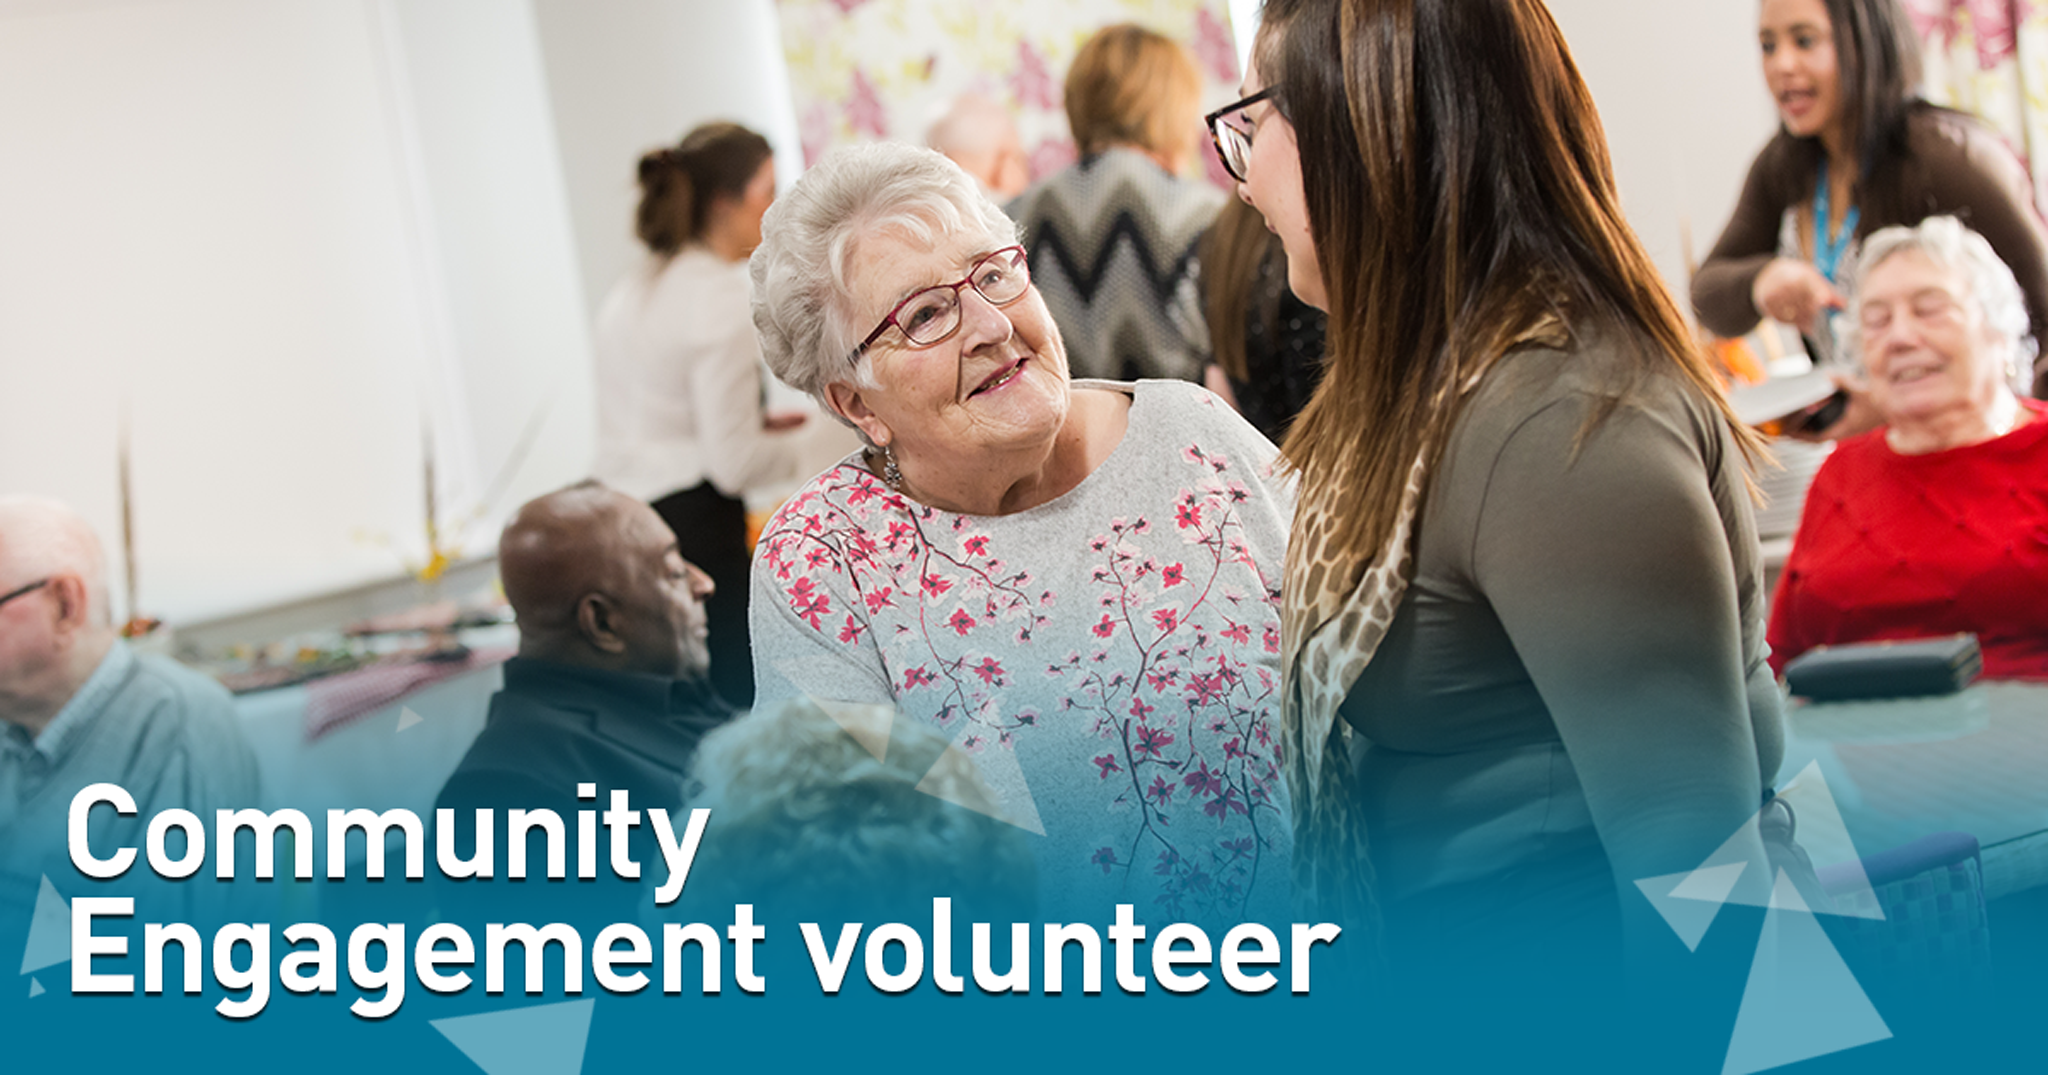 Community Engagement volunteer